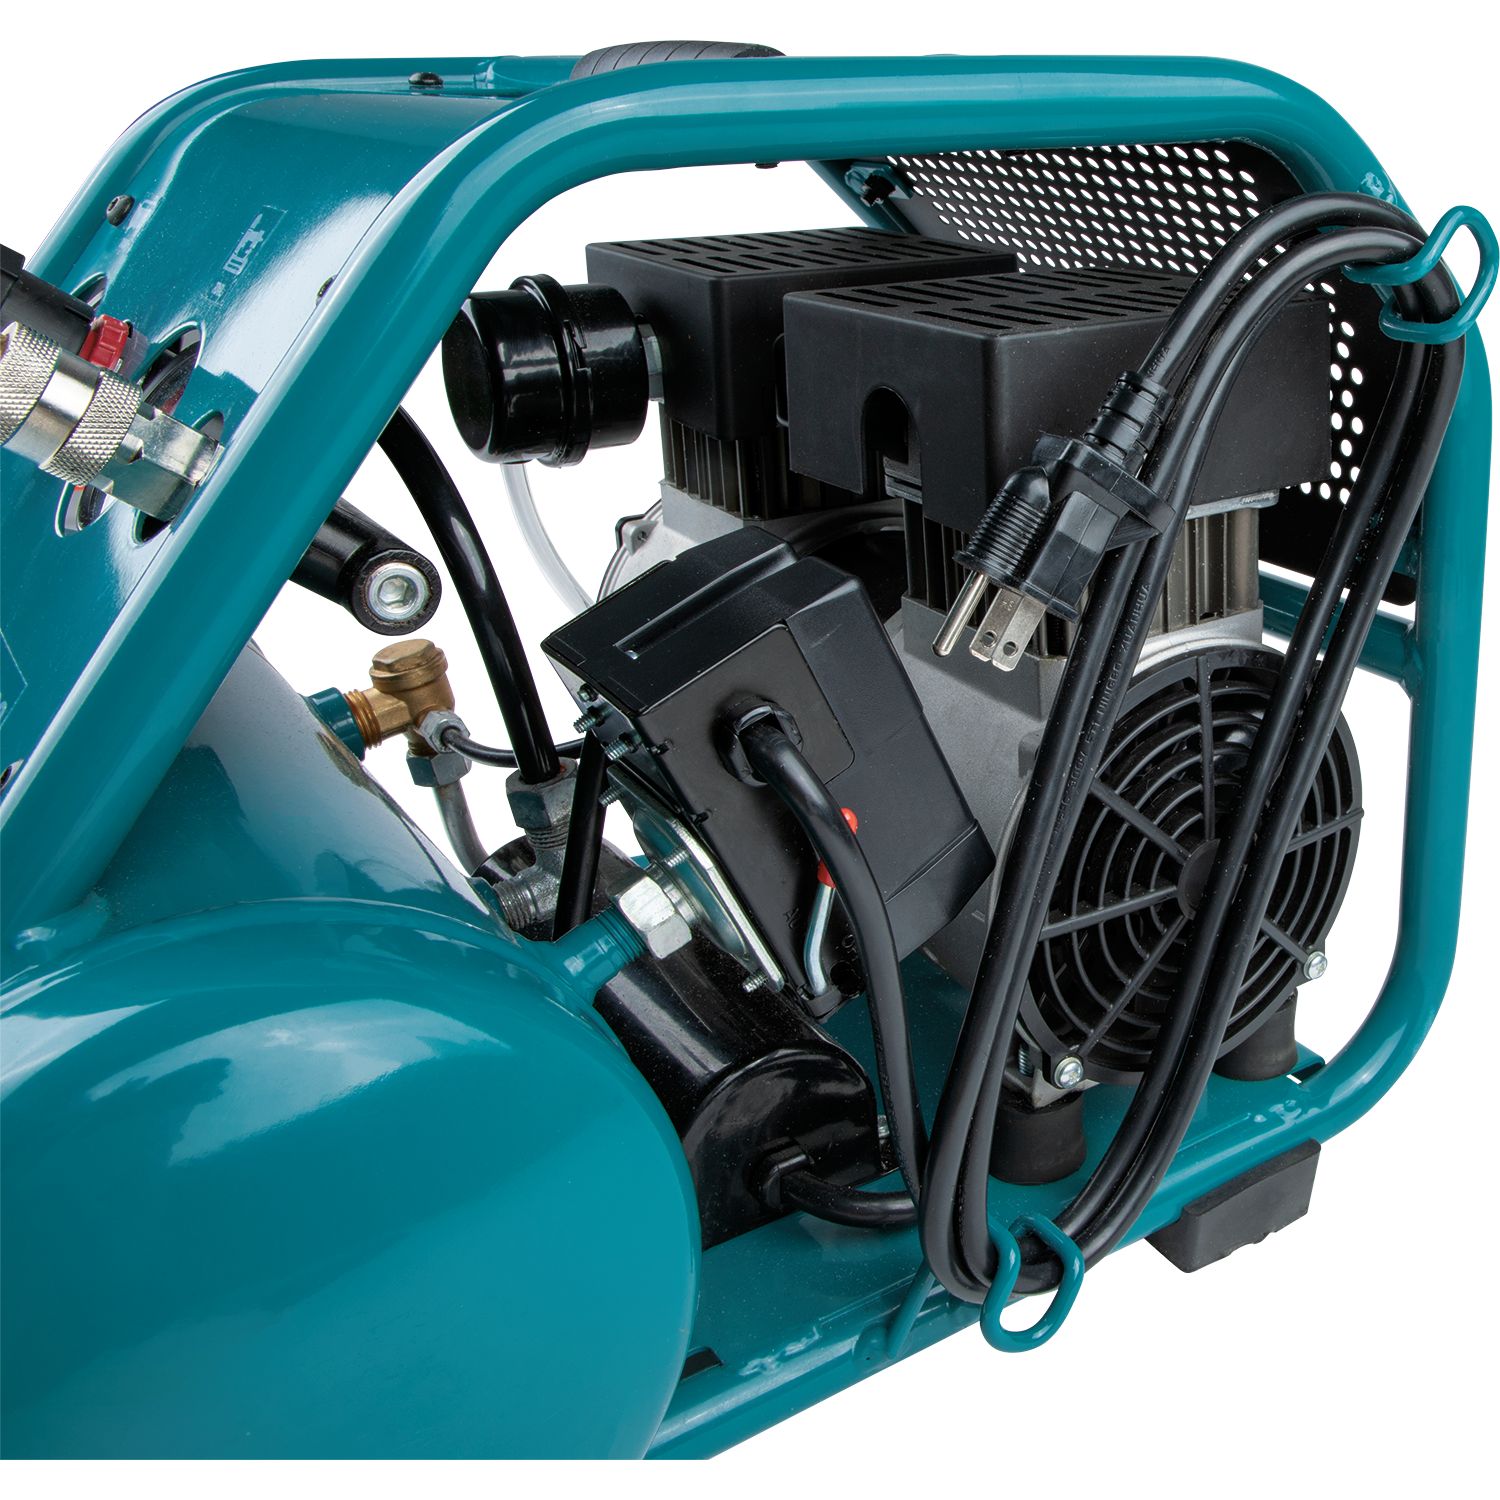 Makita MAC320Q Quiet Series 1‑1/2 HP, 3 Gallon, Oil‑Free, Electric Air Compressor